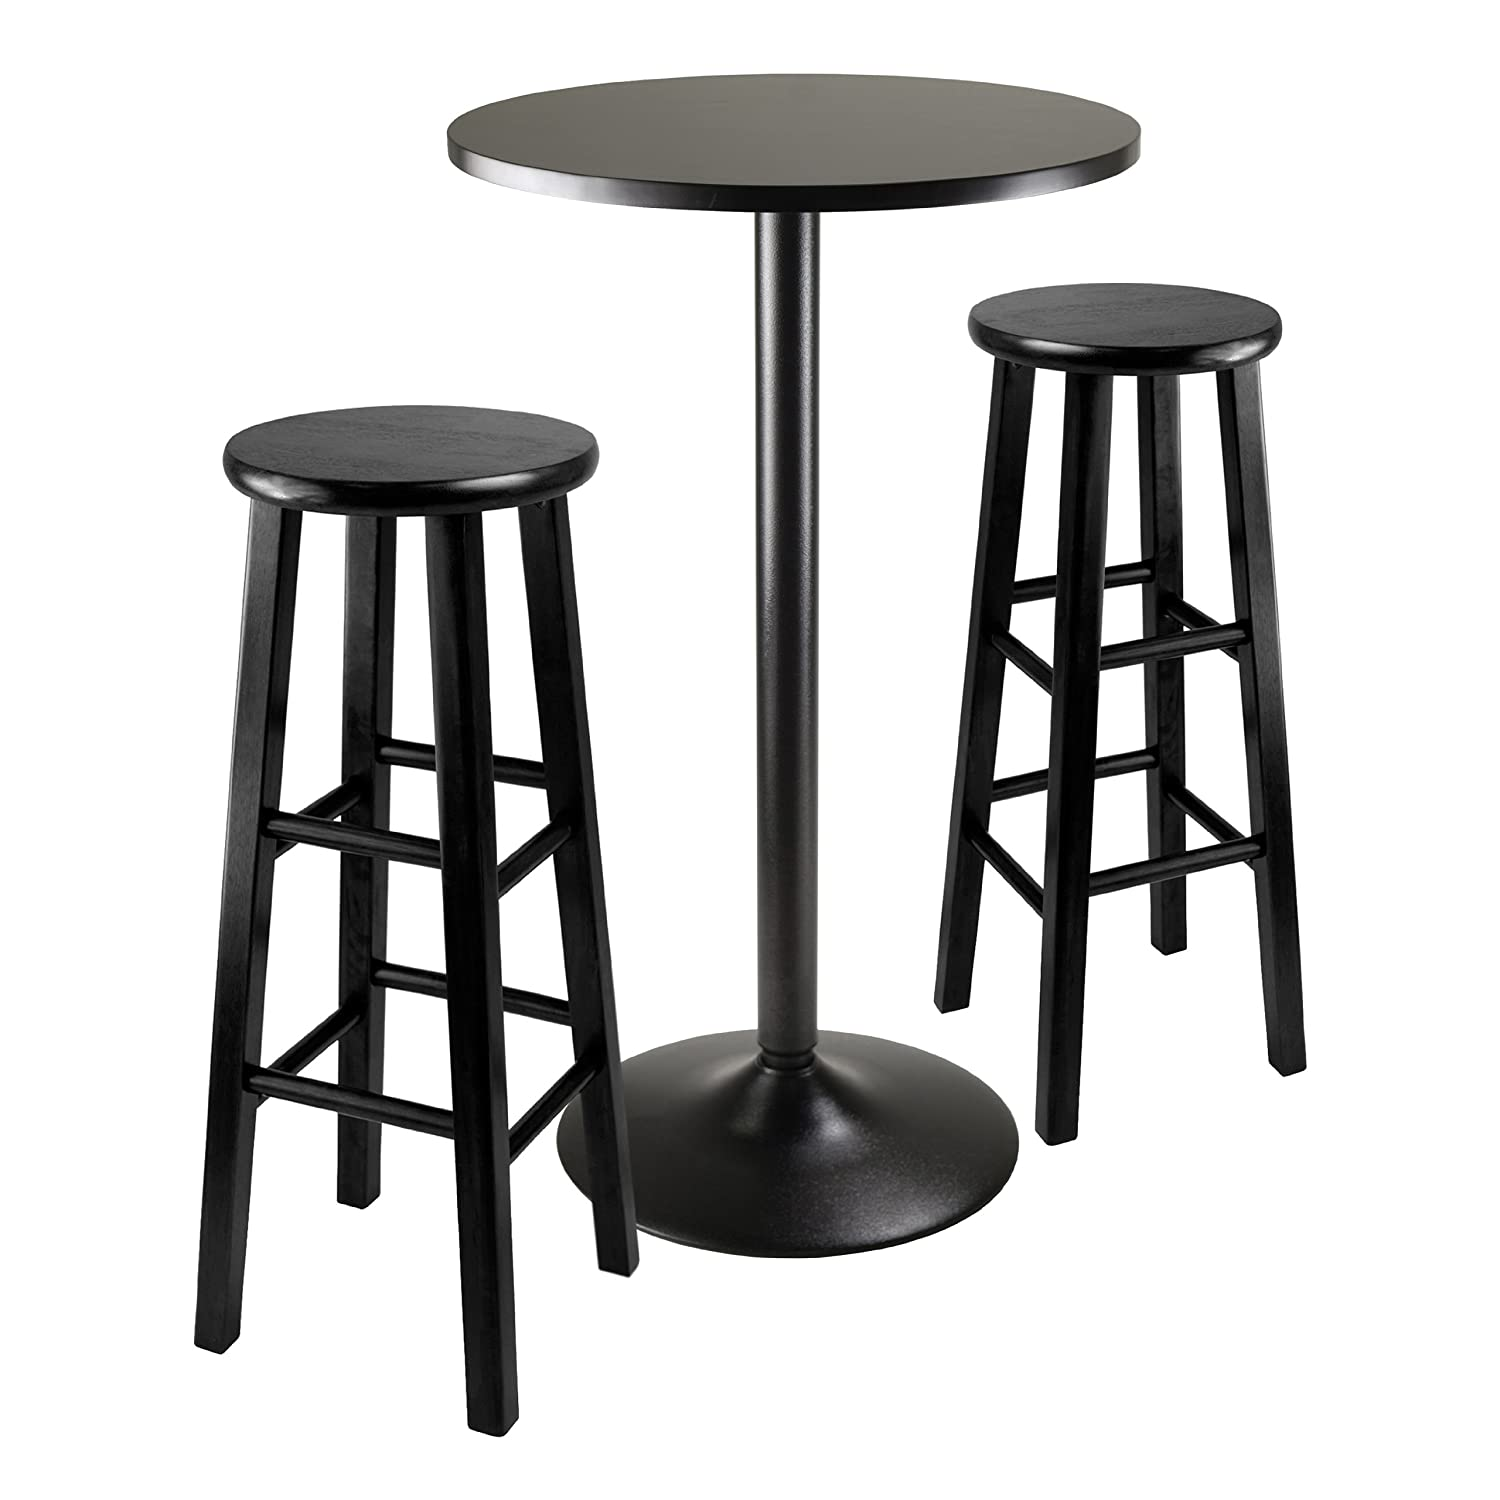 sc 1 st  Amazon.com & Amazon.com: Winsome Obsidian Pub Table Set: Kitchen u0026 Dining